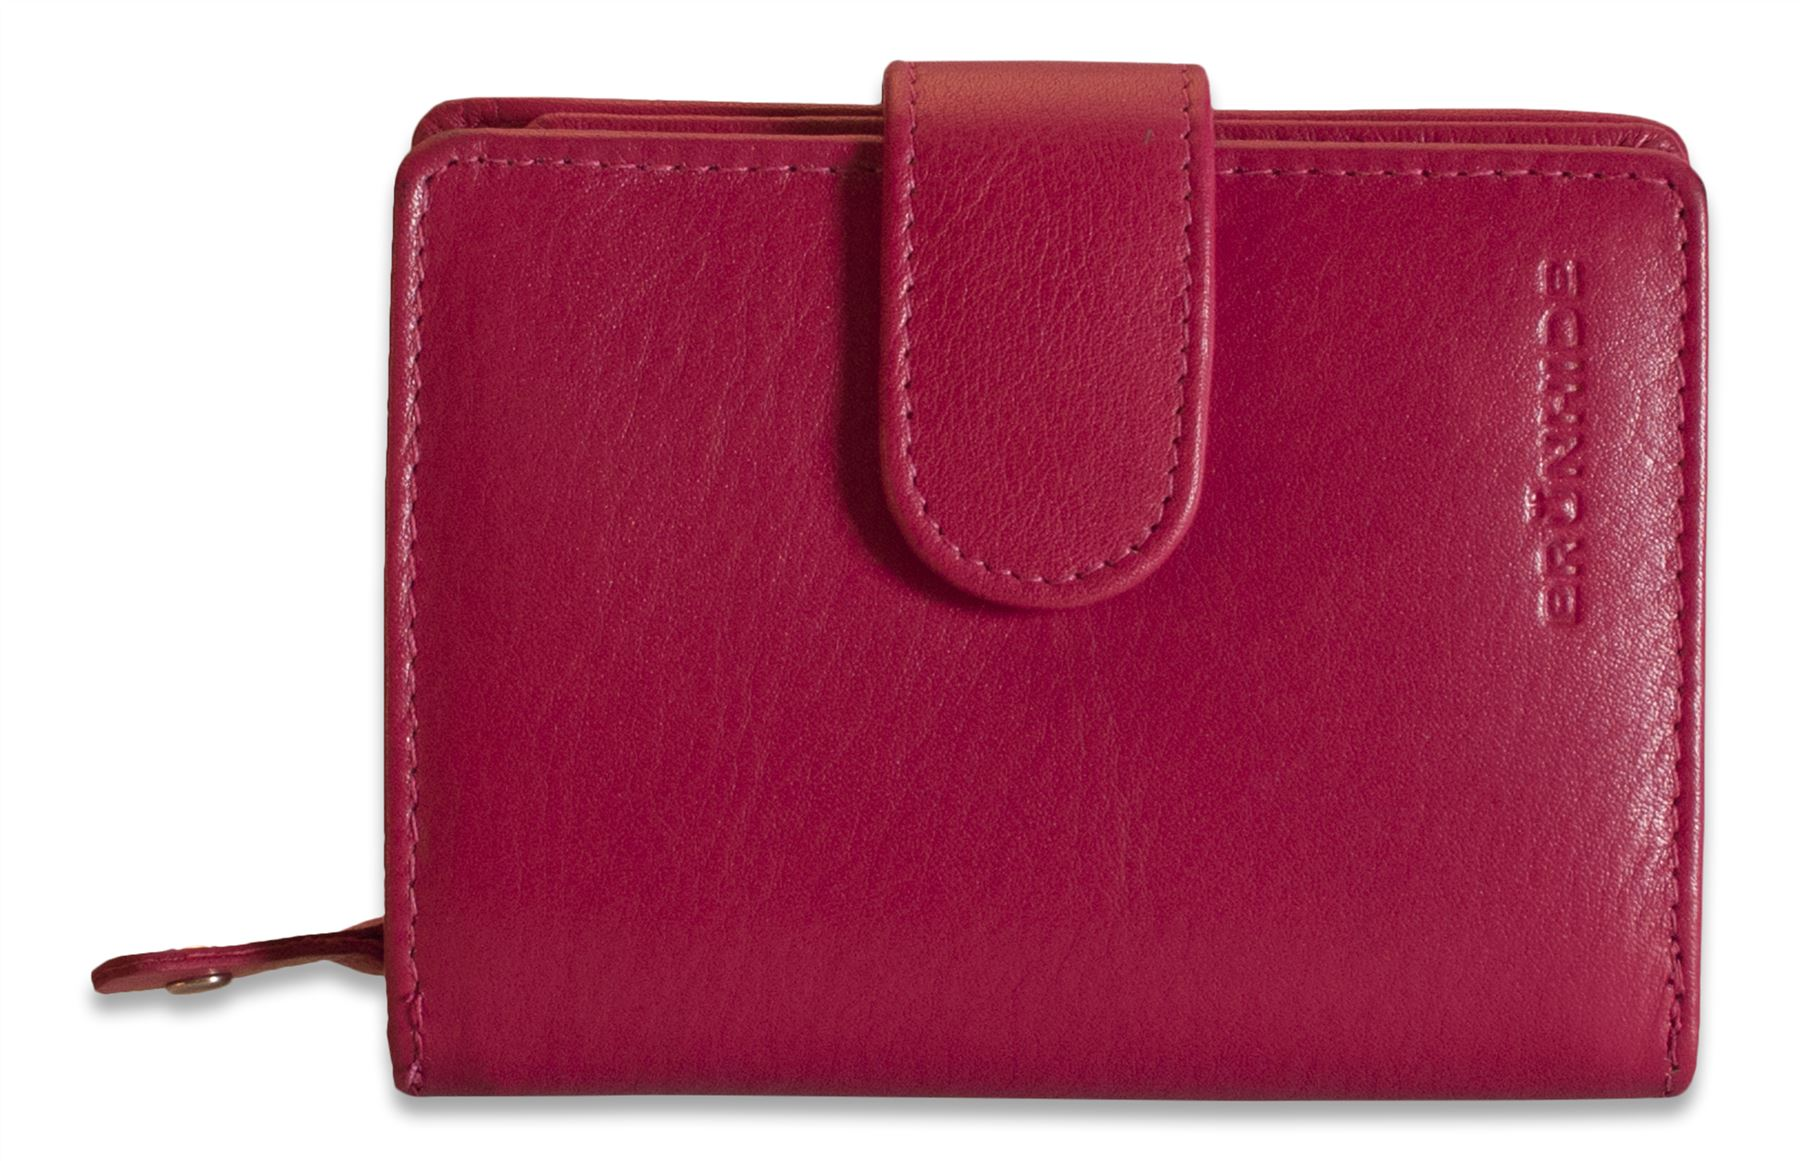 Brunhide Real Leather Womens Trifold Zip Purse Wallet ...